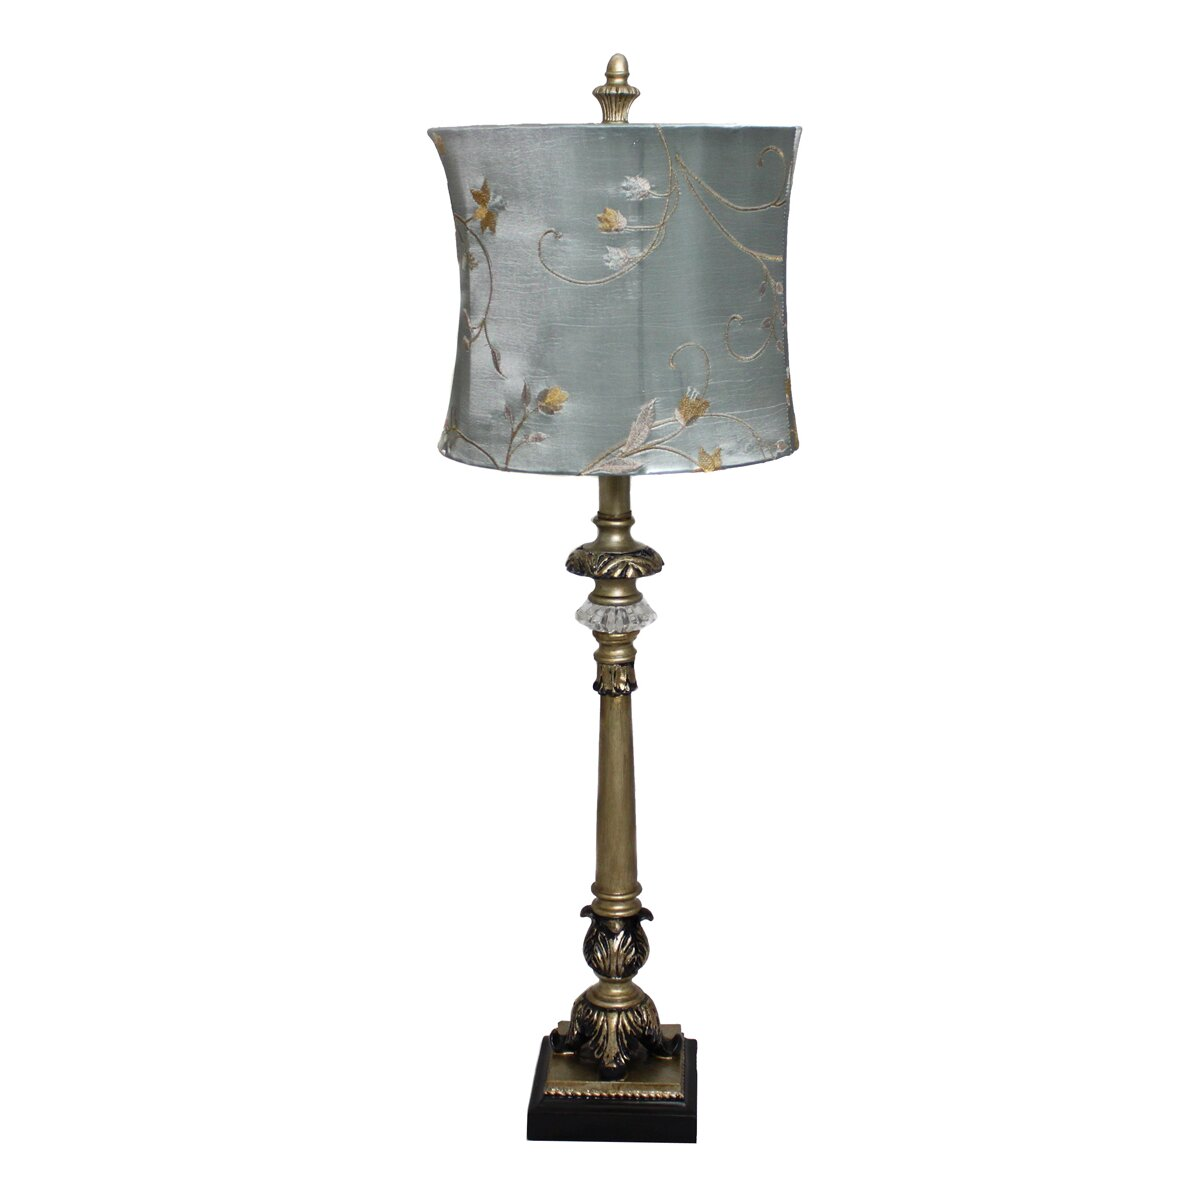 lighting lamps table lamps ec world imports sku ecwo1333. Black Bedroom Furniture Sets. Home Design Ideas